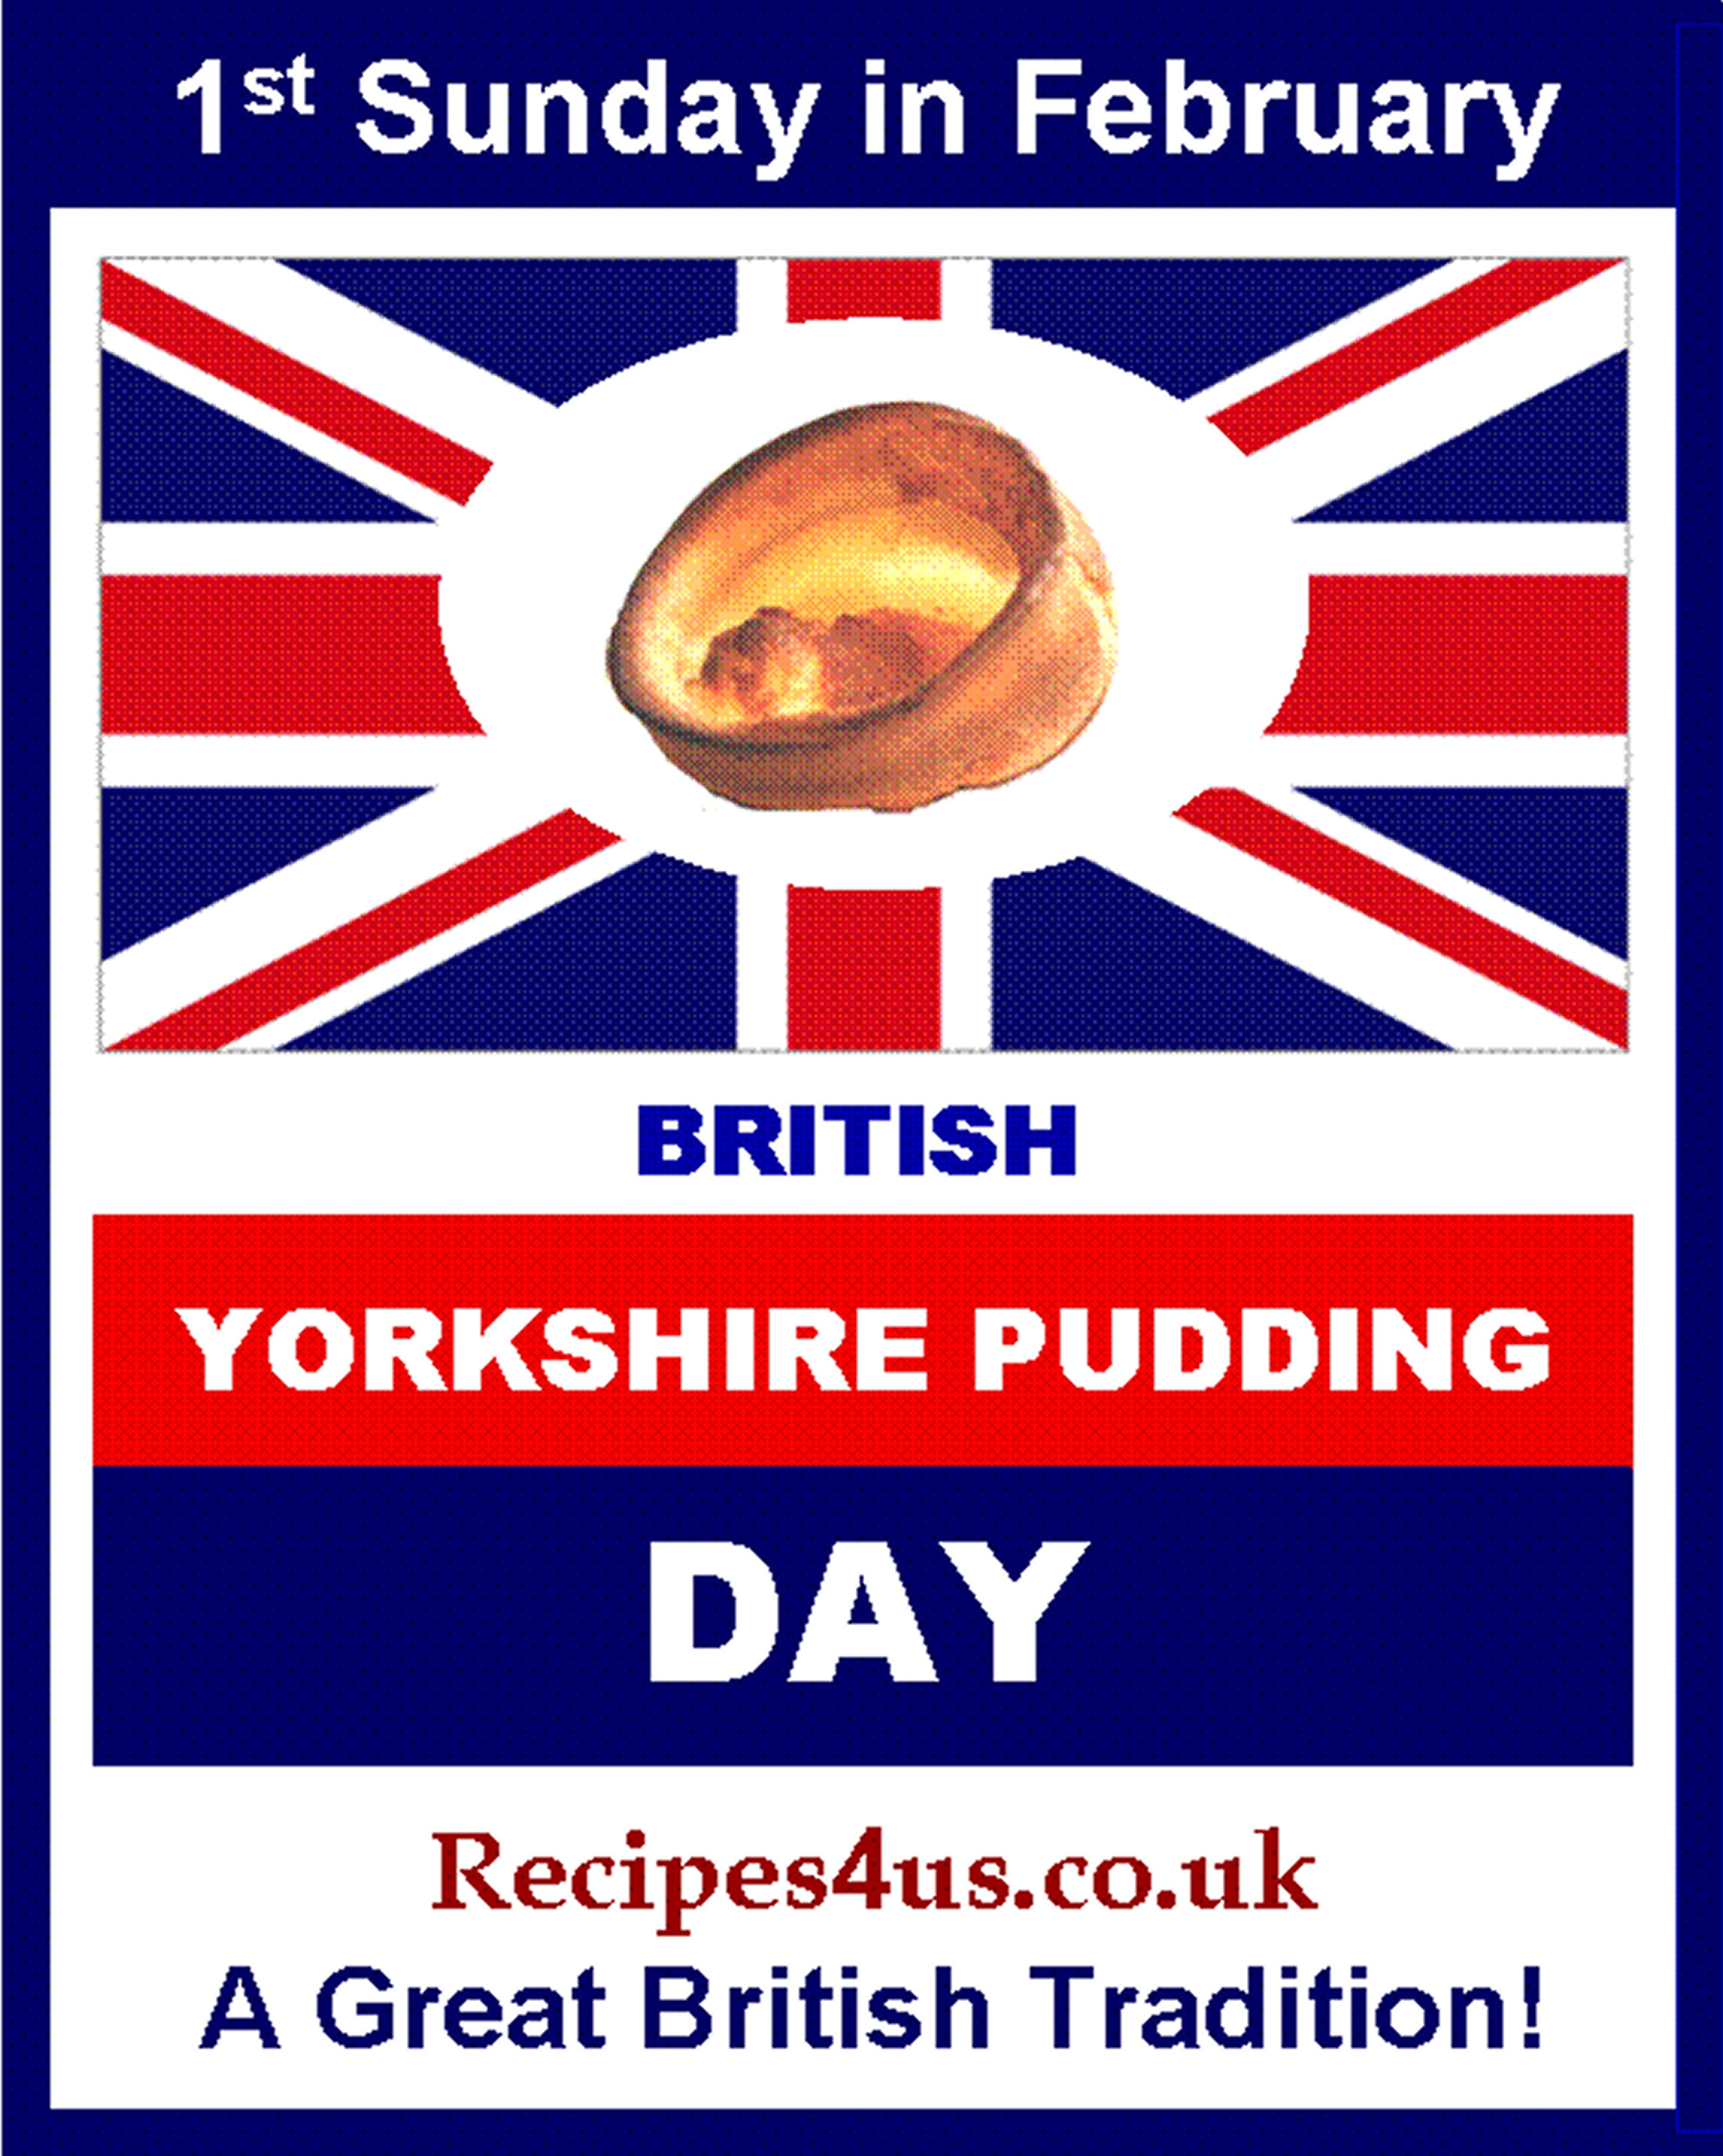 Well Believe It Or Not Sunday Is Officially British Yorkshire